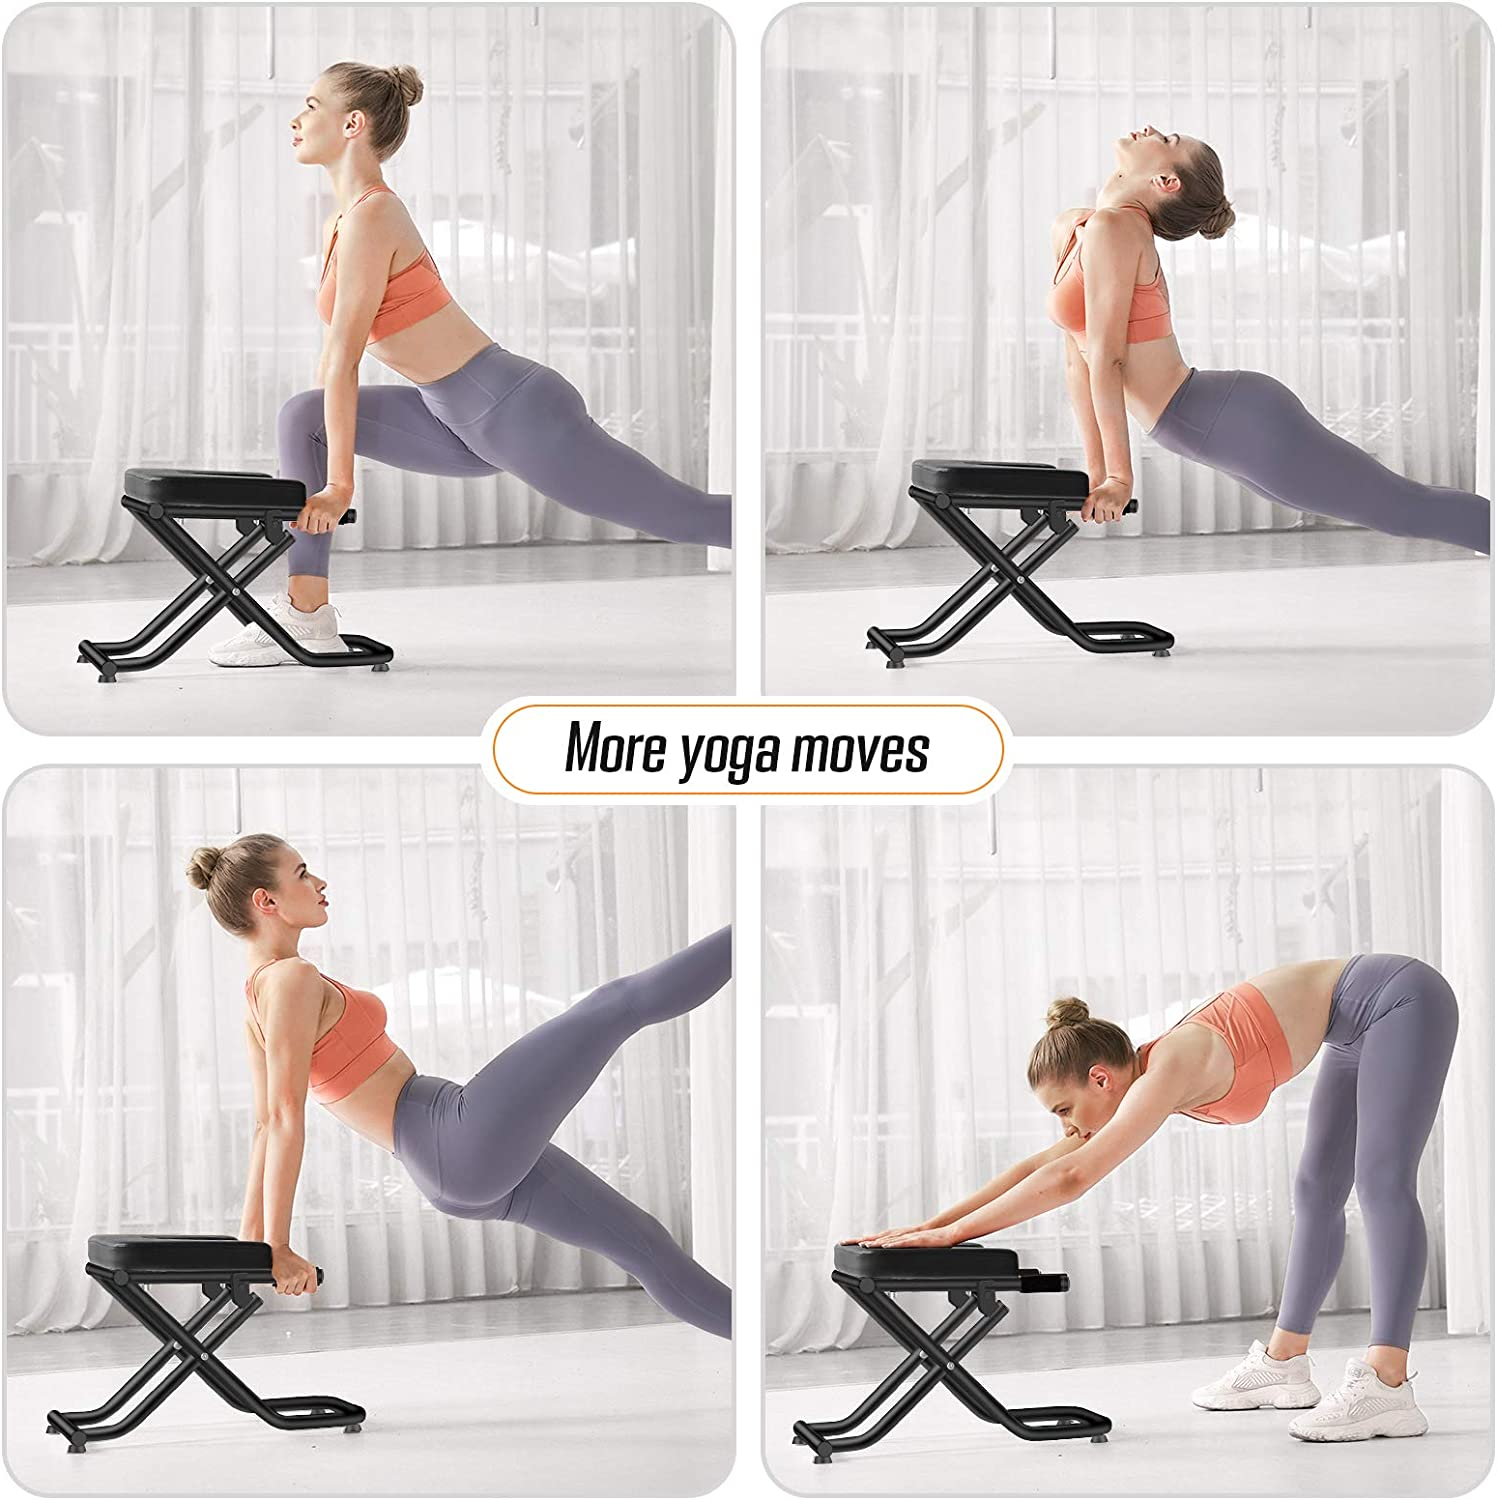 FITDO Yoga Headstand Bench,Stand Yoga Chair for Inversion Safely /& Easily,Shape Body /& Relieve Fatigue/…